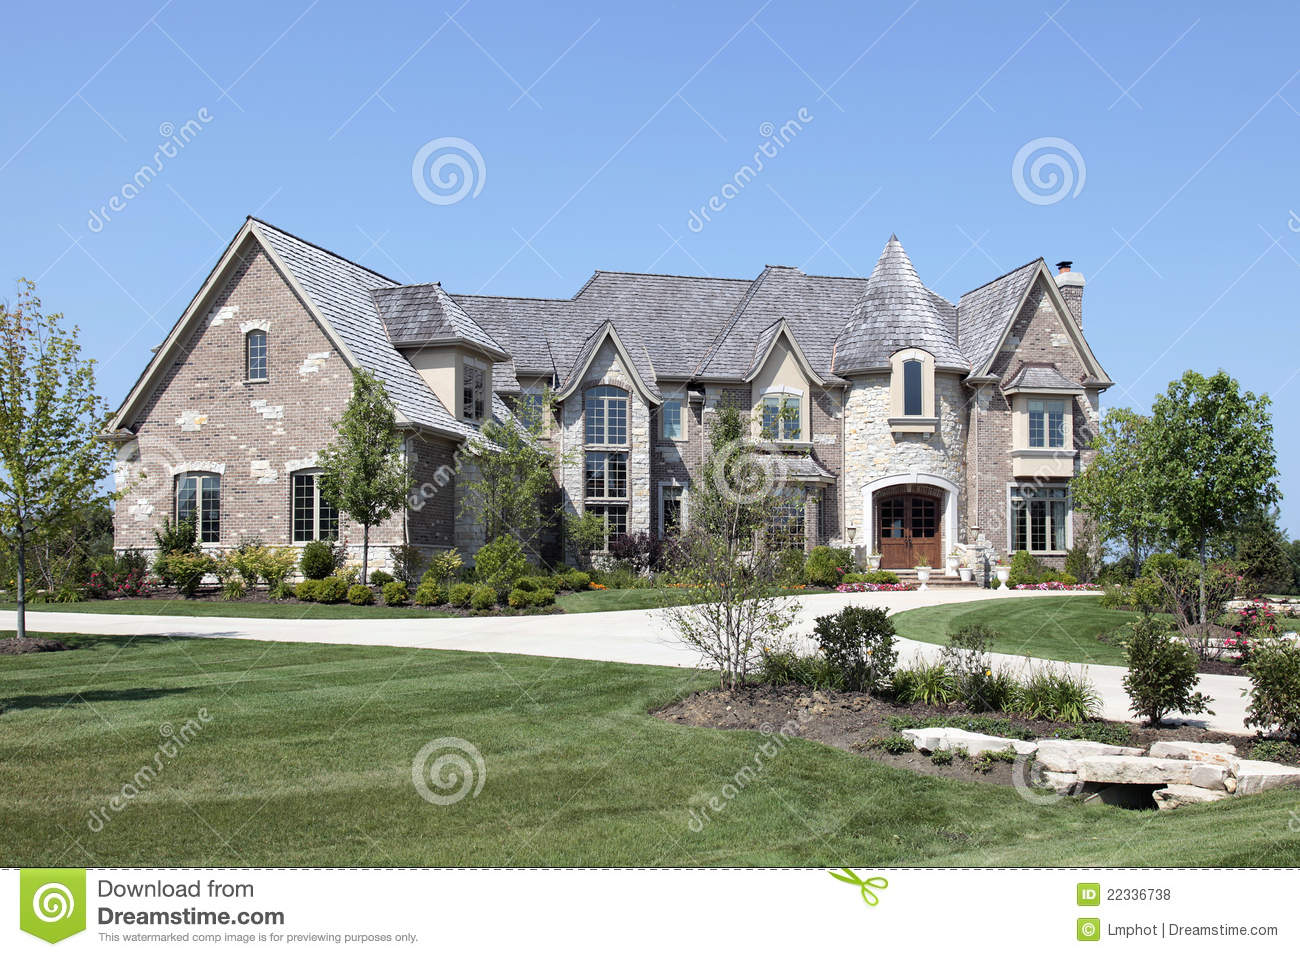 Luxury home with stone turret royalty free stock photos for Free luxury home images